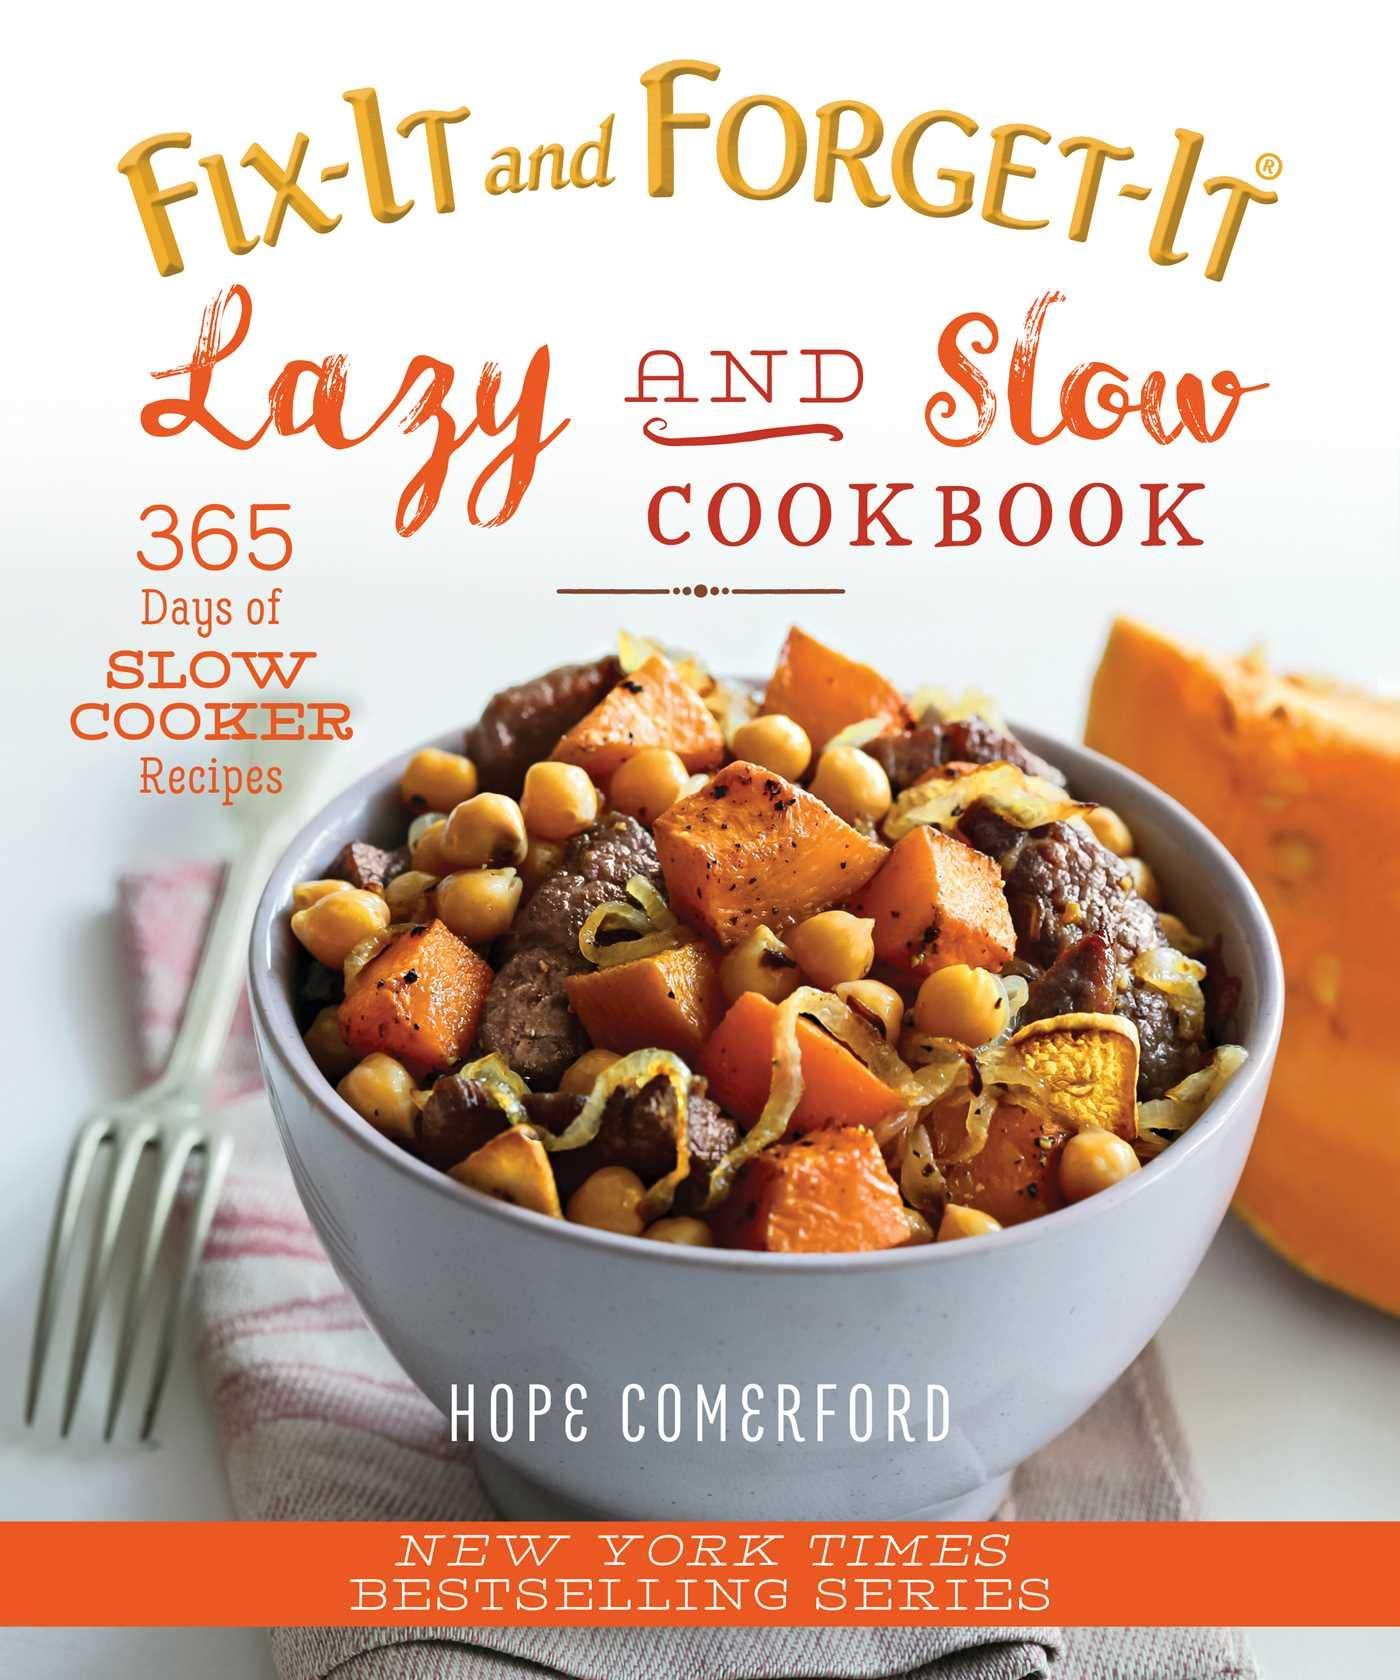 Fix-It and Forget-It Lazy and Slow Cookbook: 365 Days of Slow Cooker Recipes:  Hope Comerford: 9781680991741: Amazon.com: Books